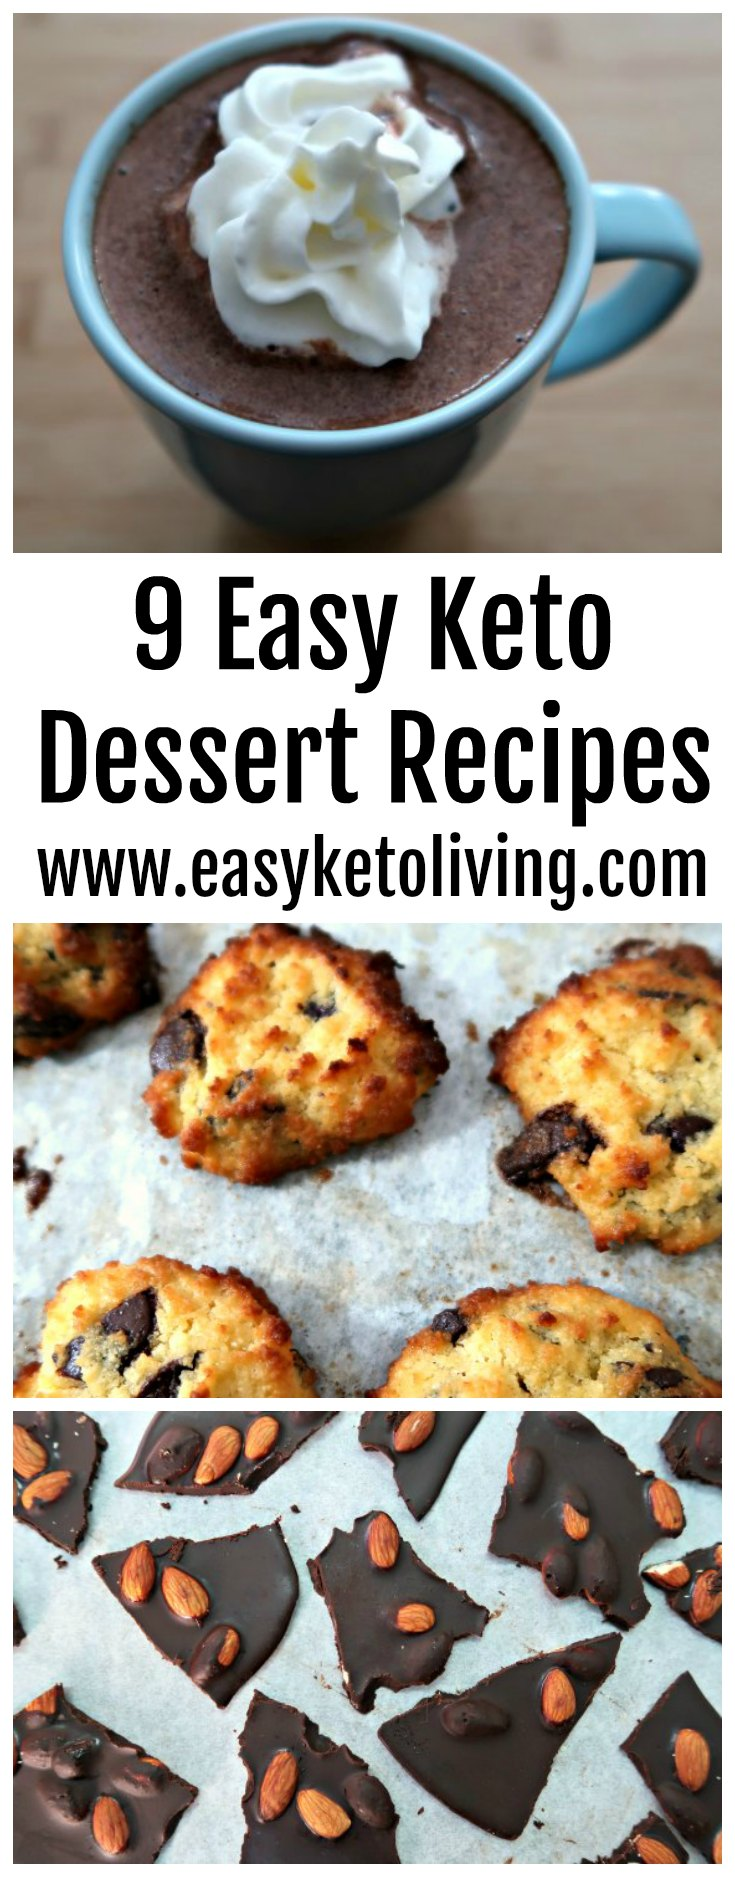 9 Easy Keto Dessert Recipes - Quick Low Carb Ketogenic ...